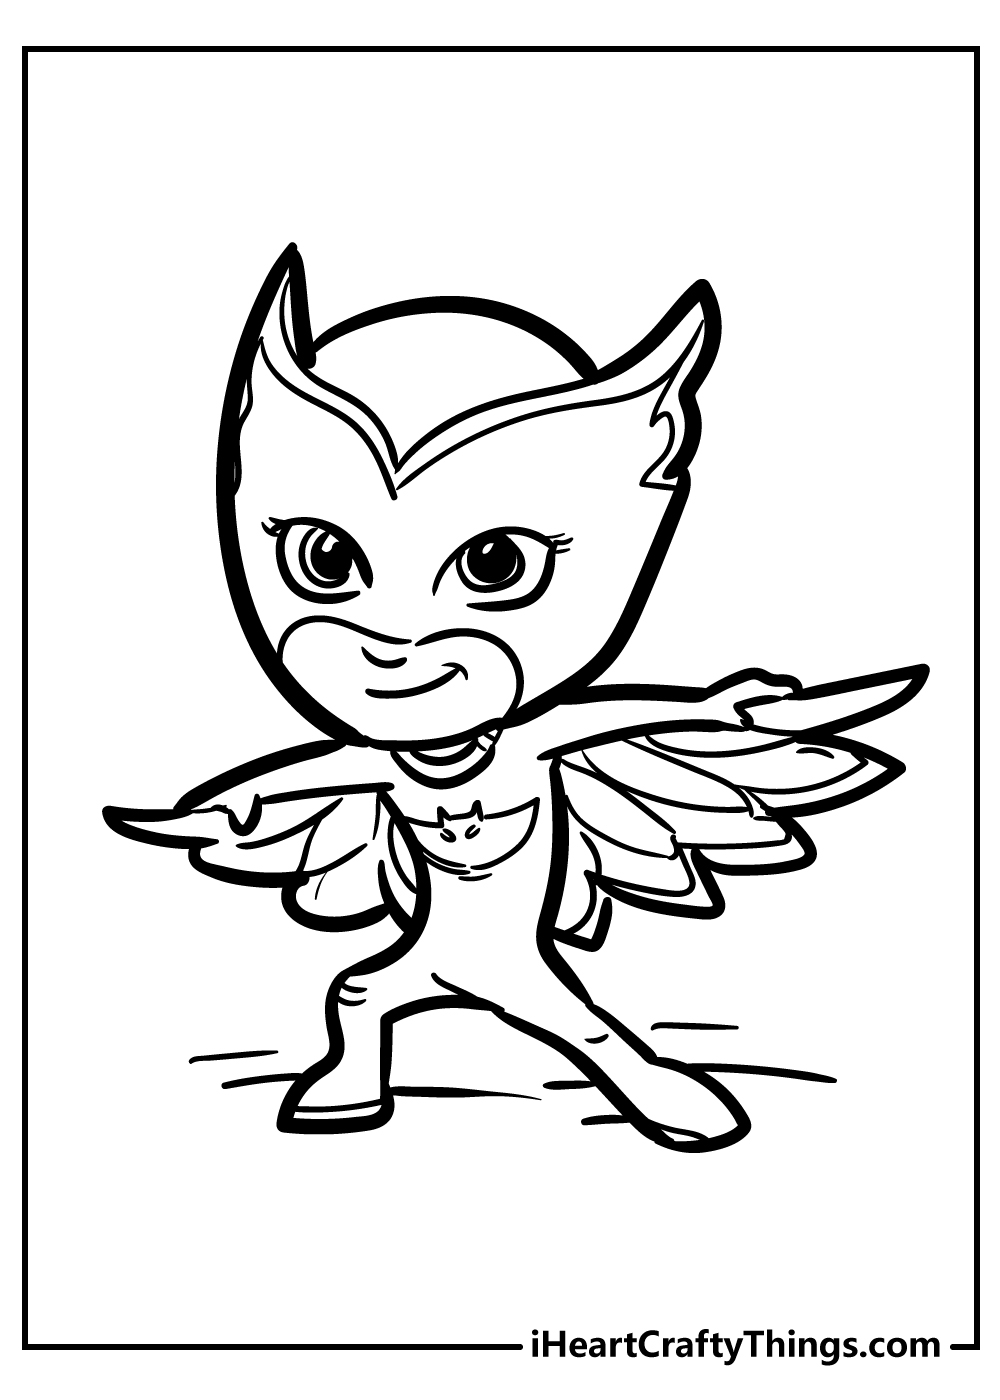 easy pj owlette coloring pages free printable